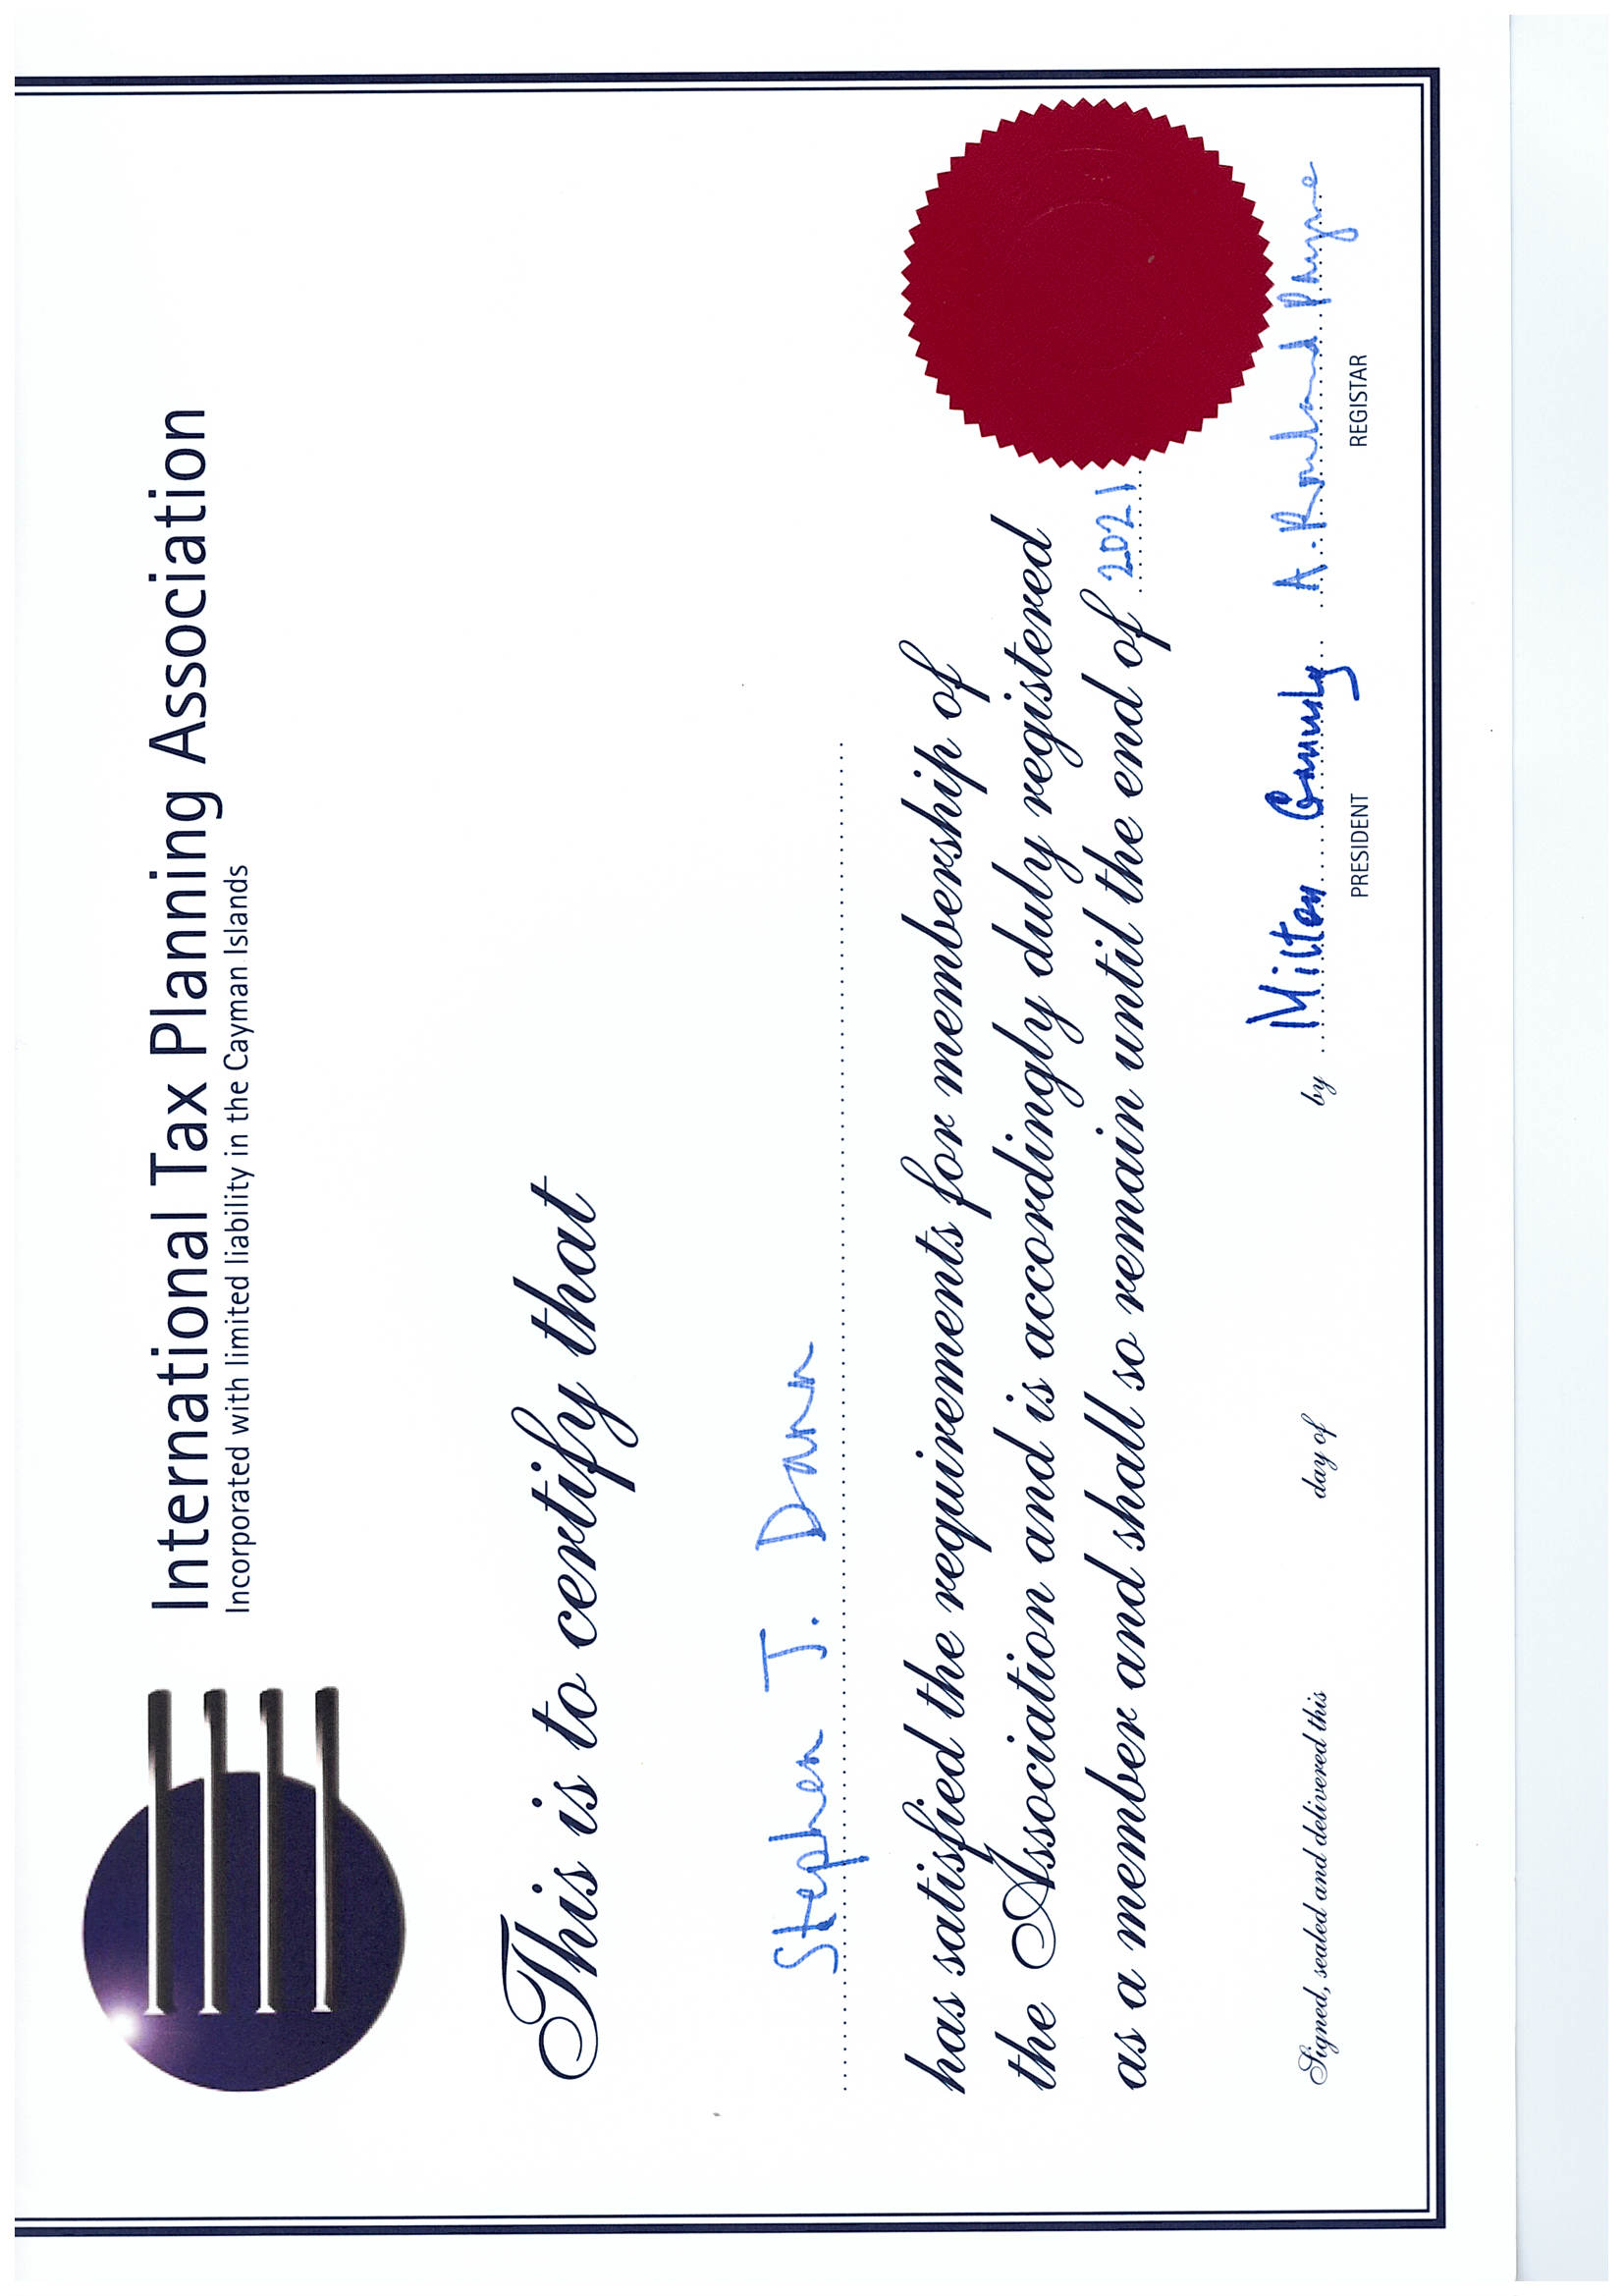 Stephen Dann International Tax Planning Association Certificate